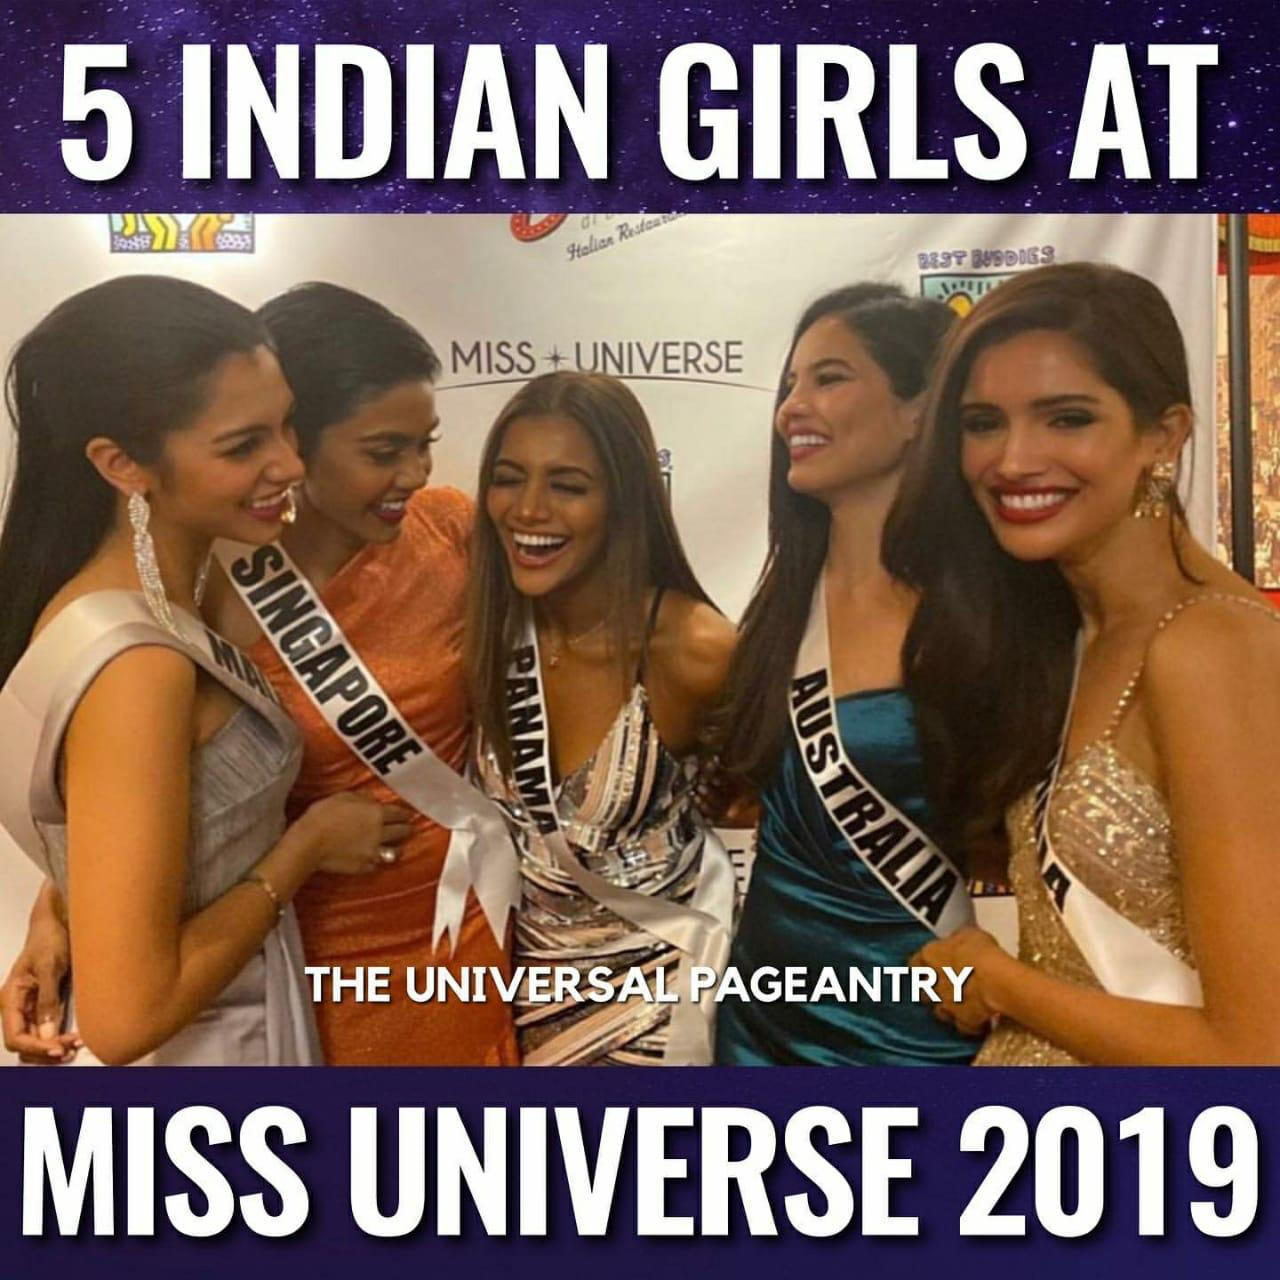 For the first time, five Indian girls took part in Miss Universe 2019 competition